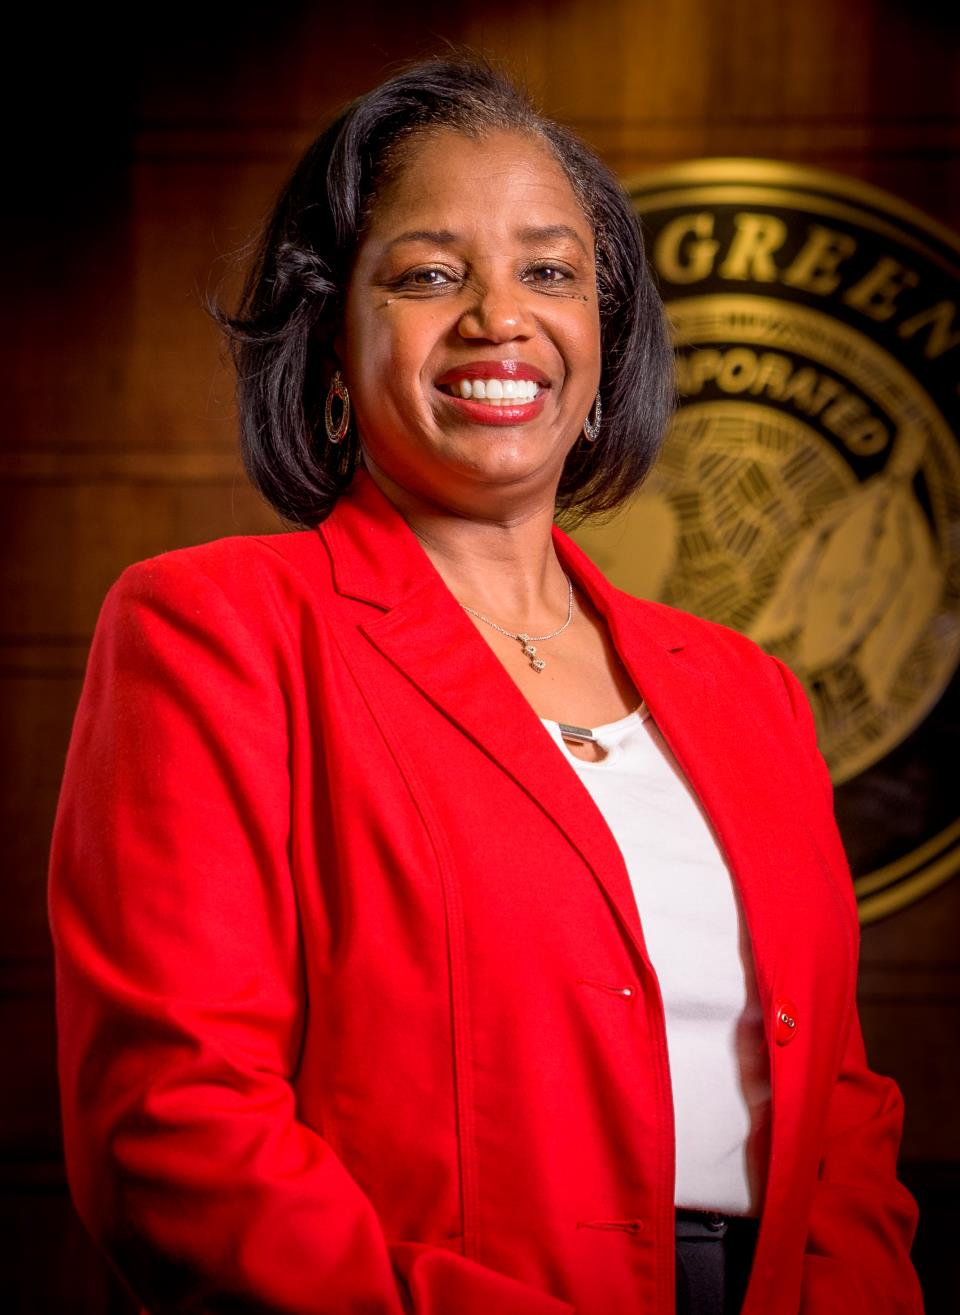 City manager government card - Kandie Smith 2015 2017